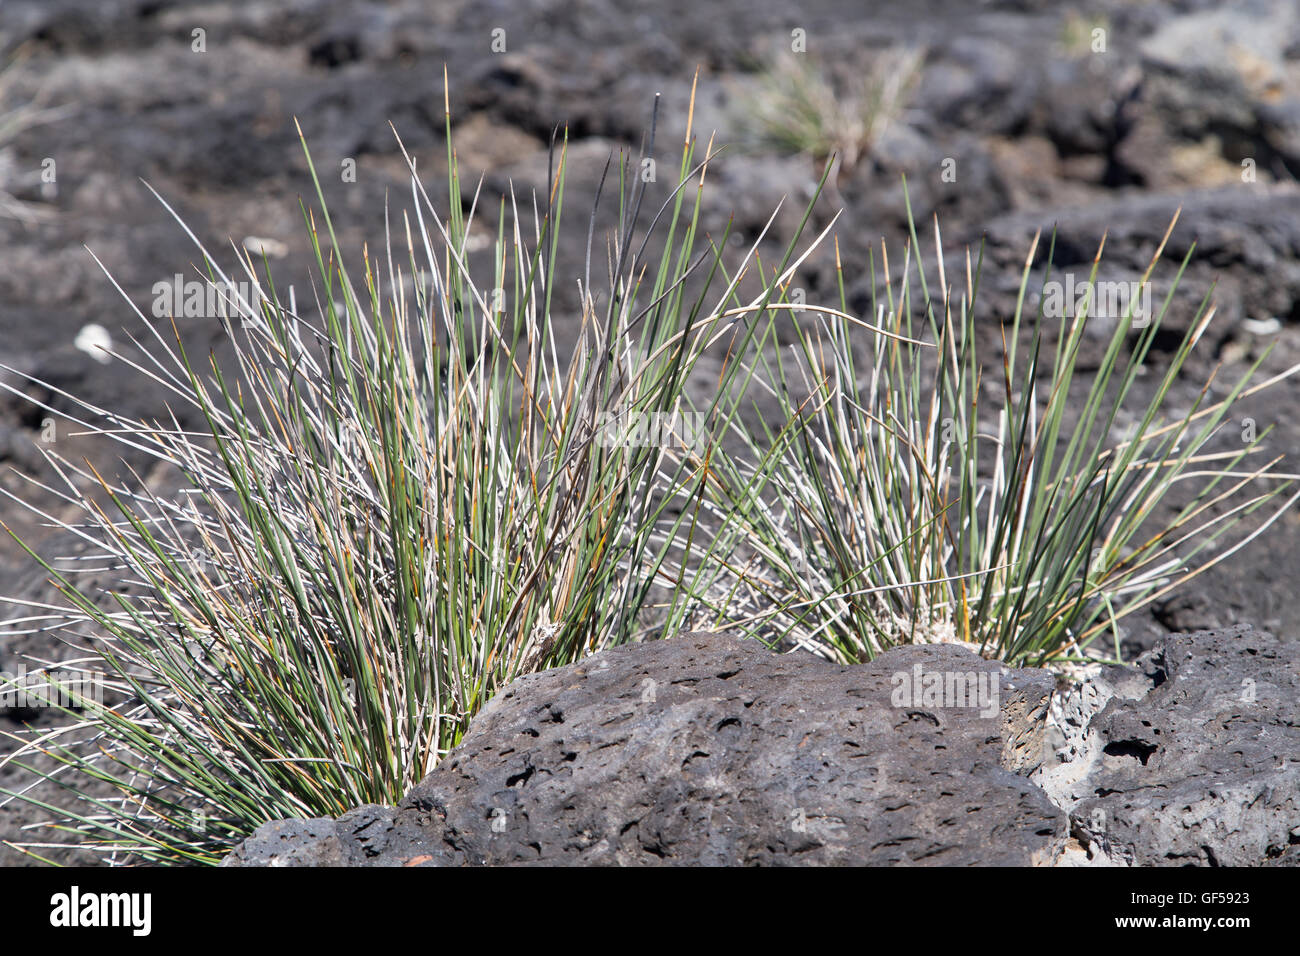 Volcanic landscape at Pico island with endemic flora - Stock Image